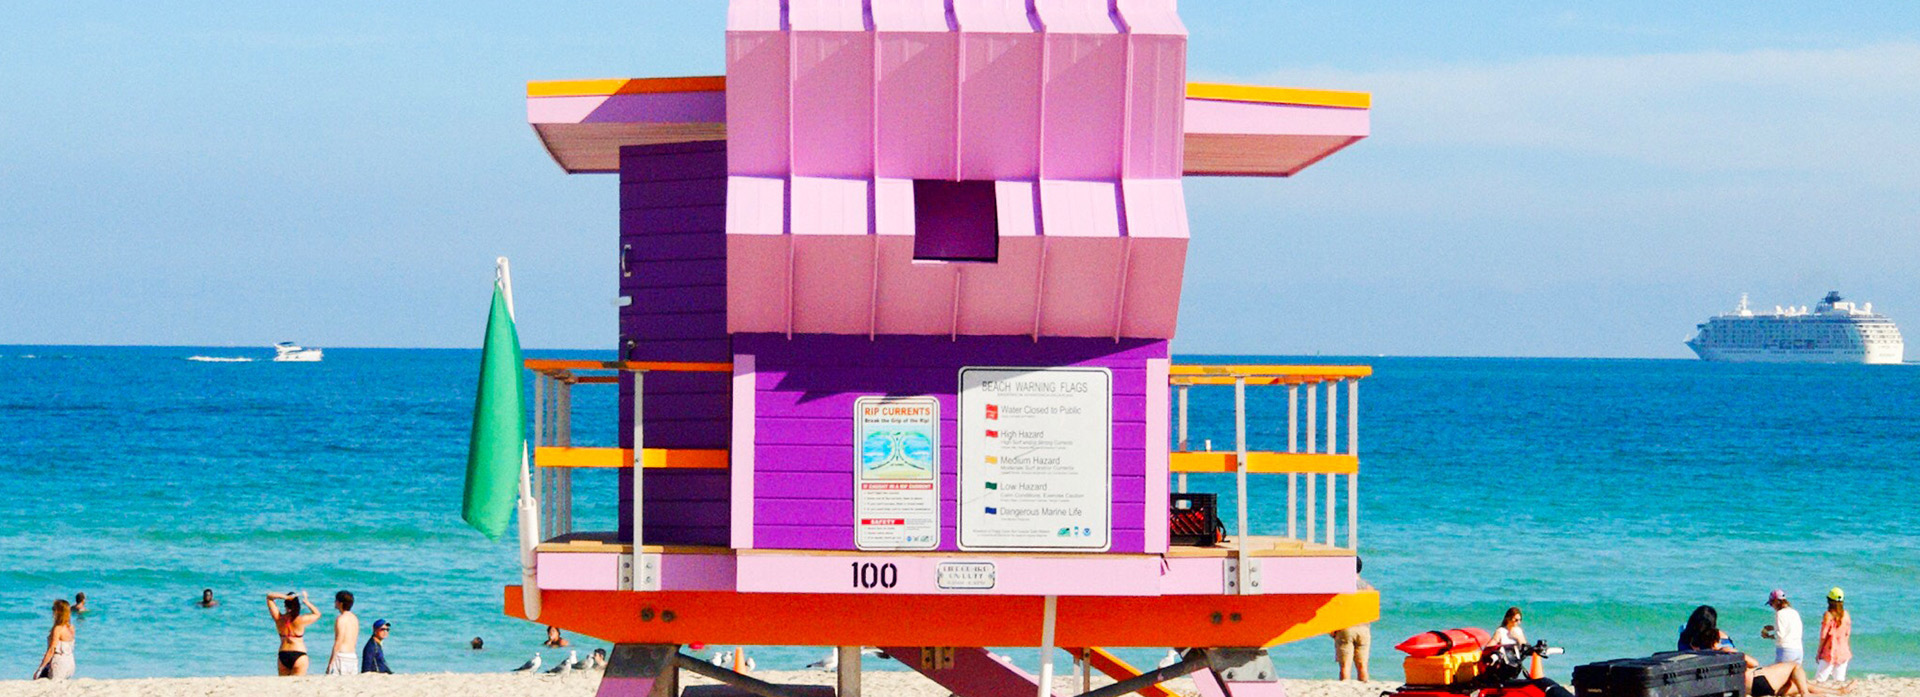 Pink lifeguard station in Miami